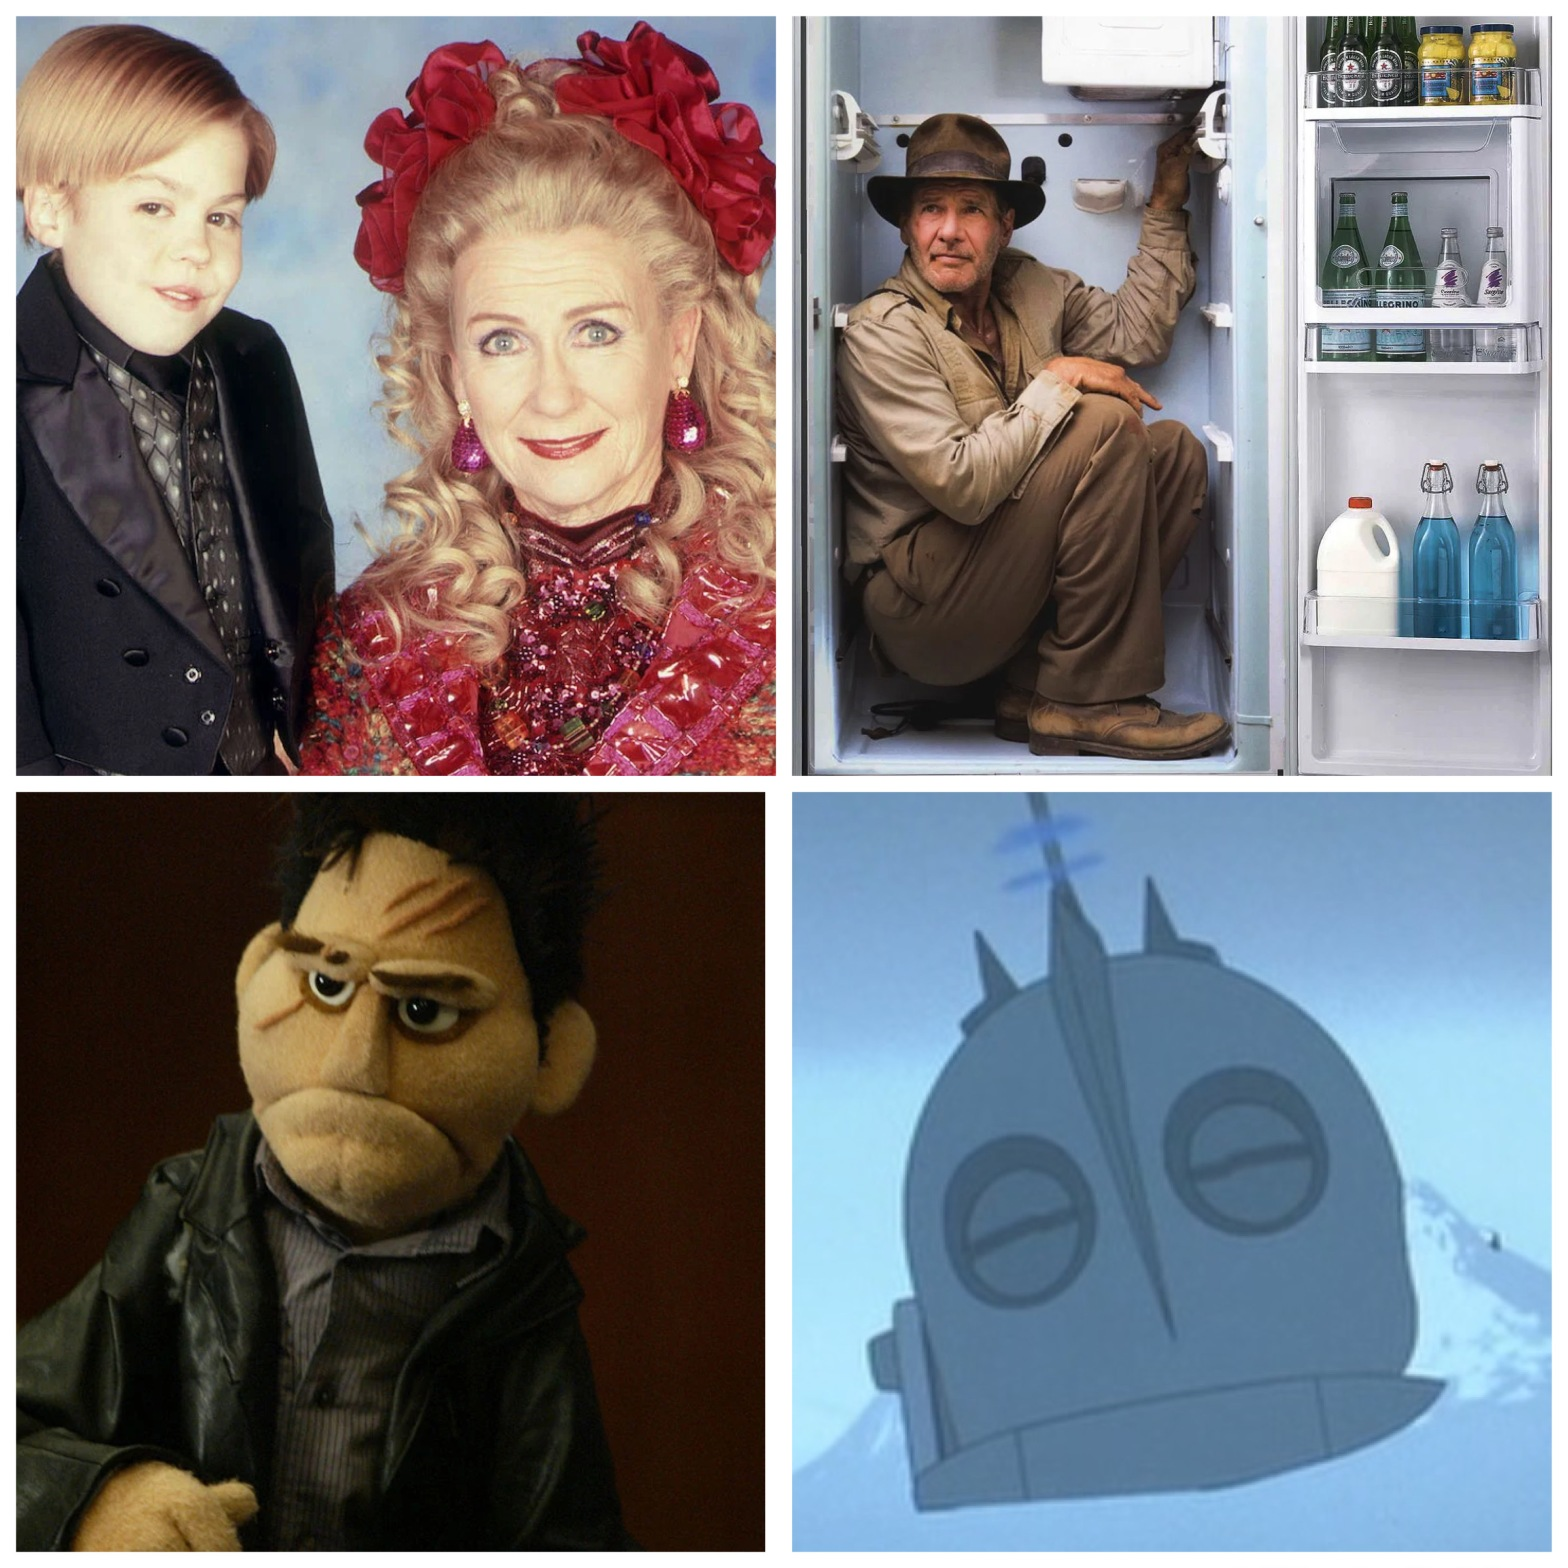 """Joshua Ryan Evans in Passions, Harrison Ford in a refrigerator, an Angel puppet from """"Smile Time,"""" and the Iron Giant."""